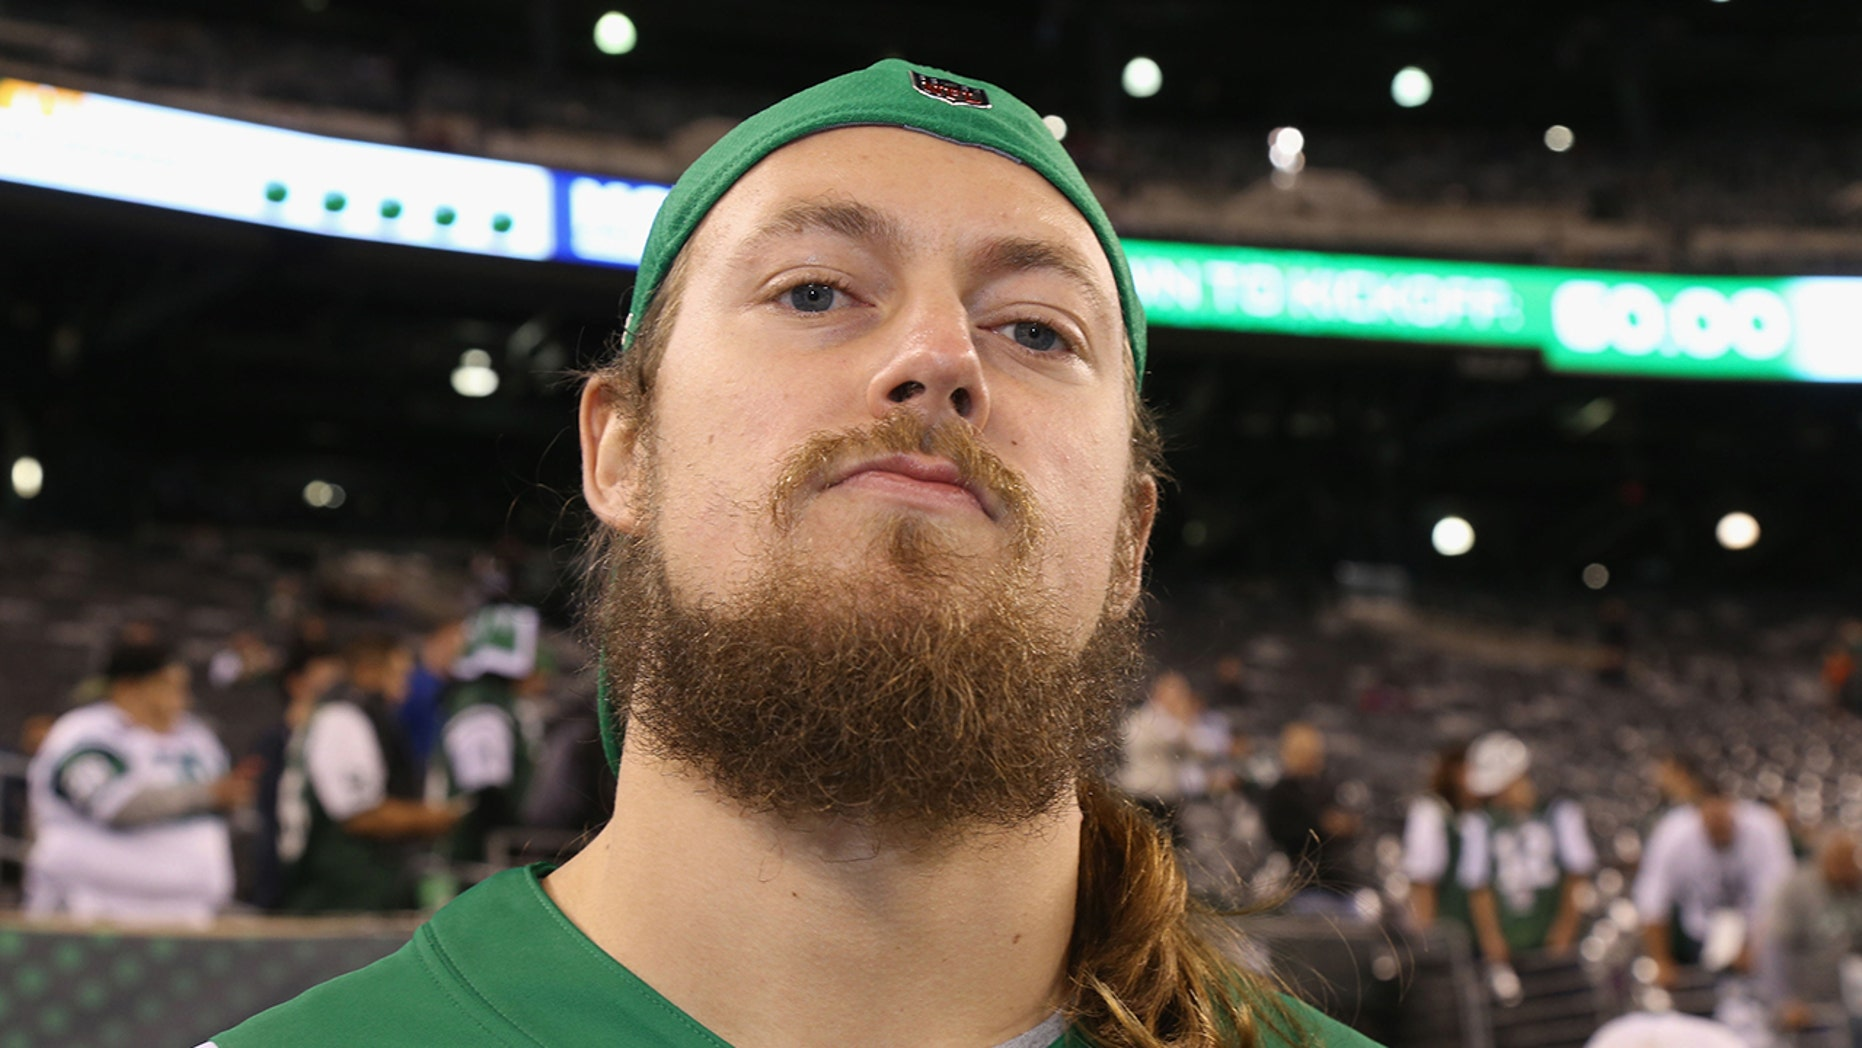 Former WWE wrestler Big Cass reportedly had to be hospitalized after a seizure.